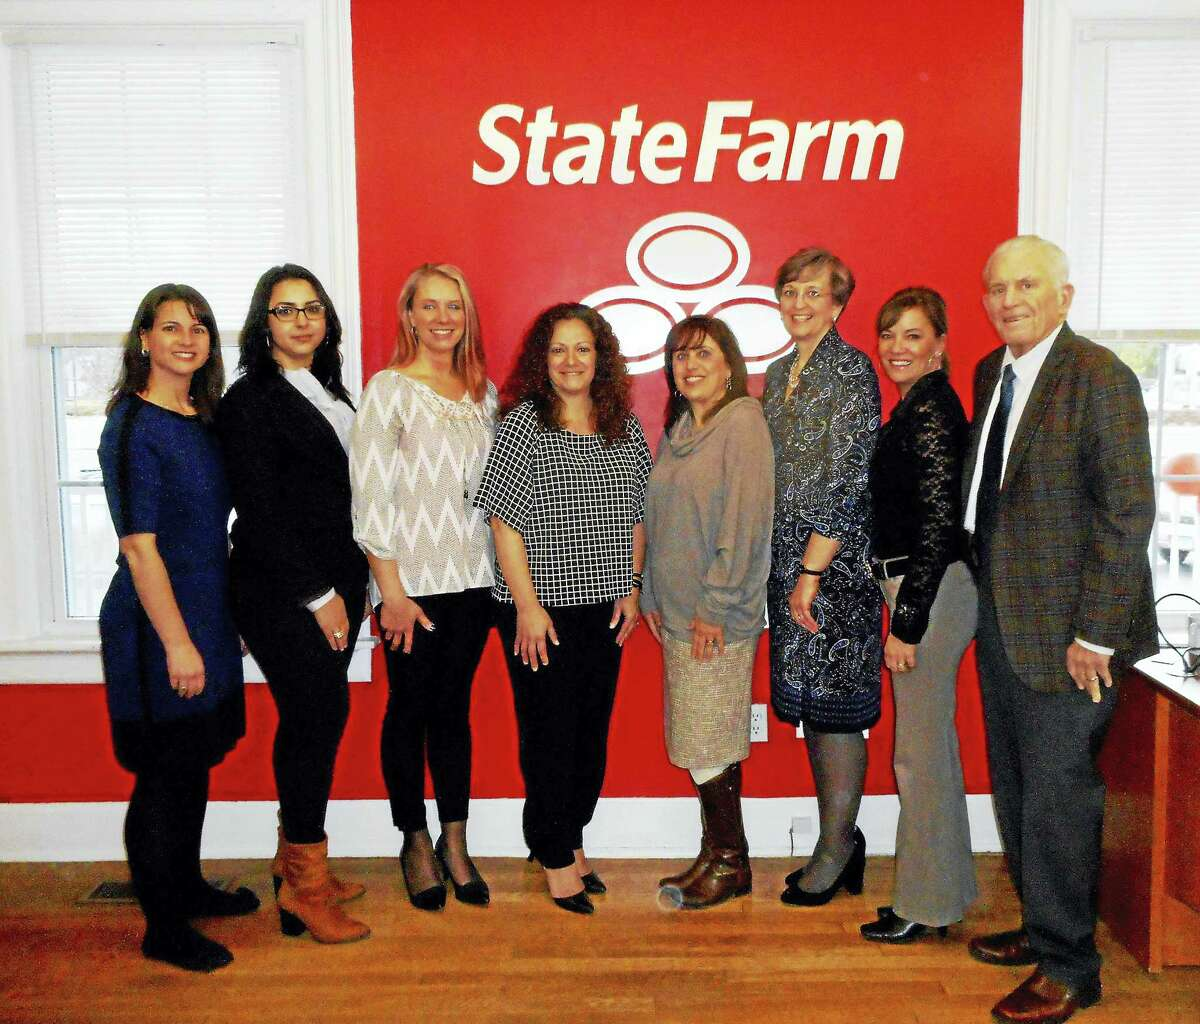 State Farm Insurance in Portland held its grand opening Feb. 4. From left are: state Rep. Christie Carpino, State Farm personal account representatives Kattie Viveiros and Sharon Leland, and owner/agent Mimma Burke; Town Planner Deanna Rhodes, Economic Development Consultant Mary Dickerson, Chamber Vice President Johanna Bond, and Chamber President Larry McHugh.